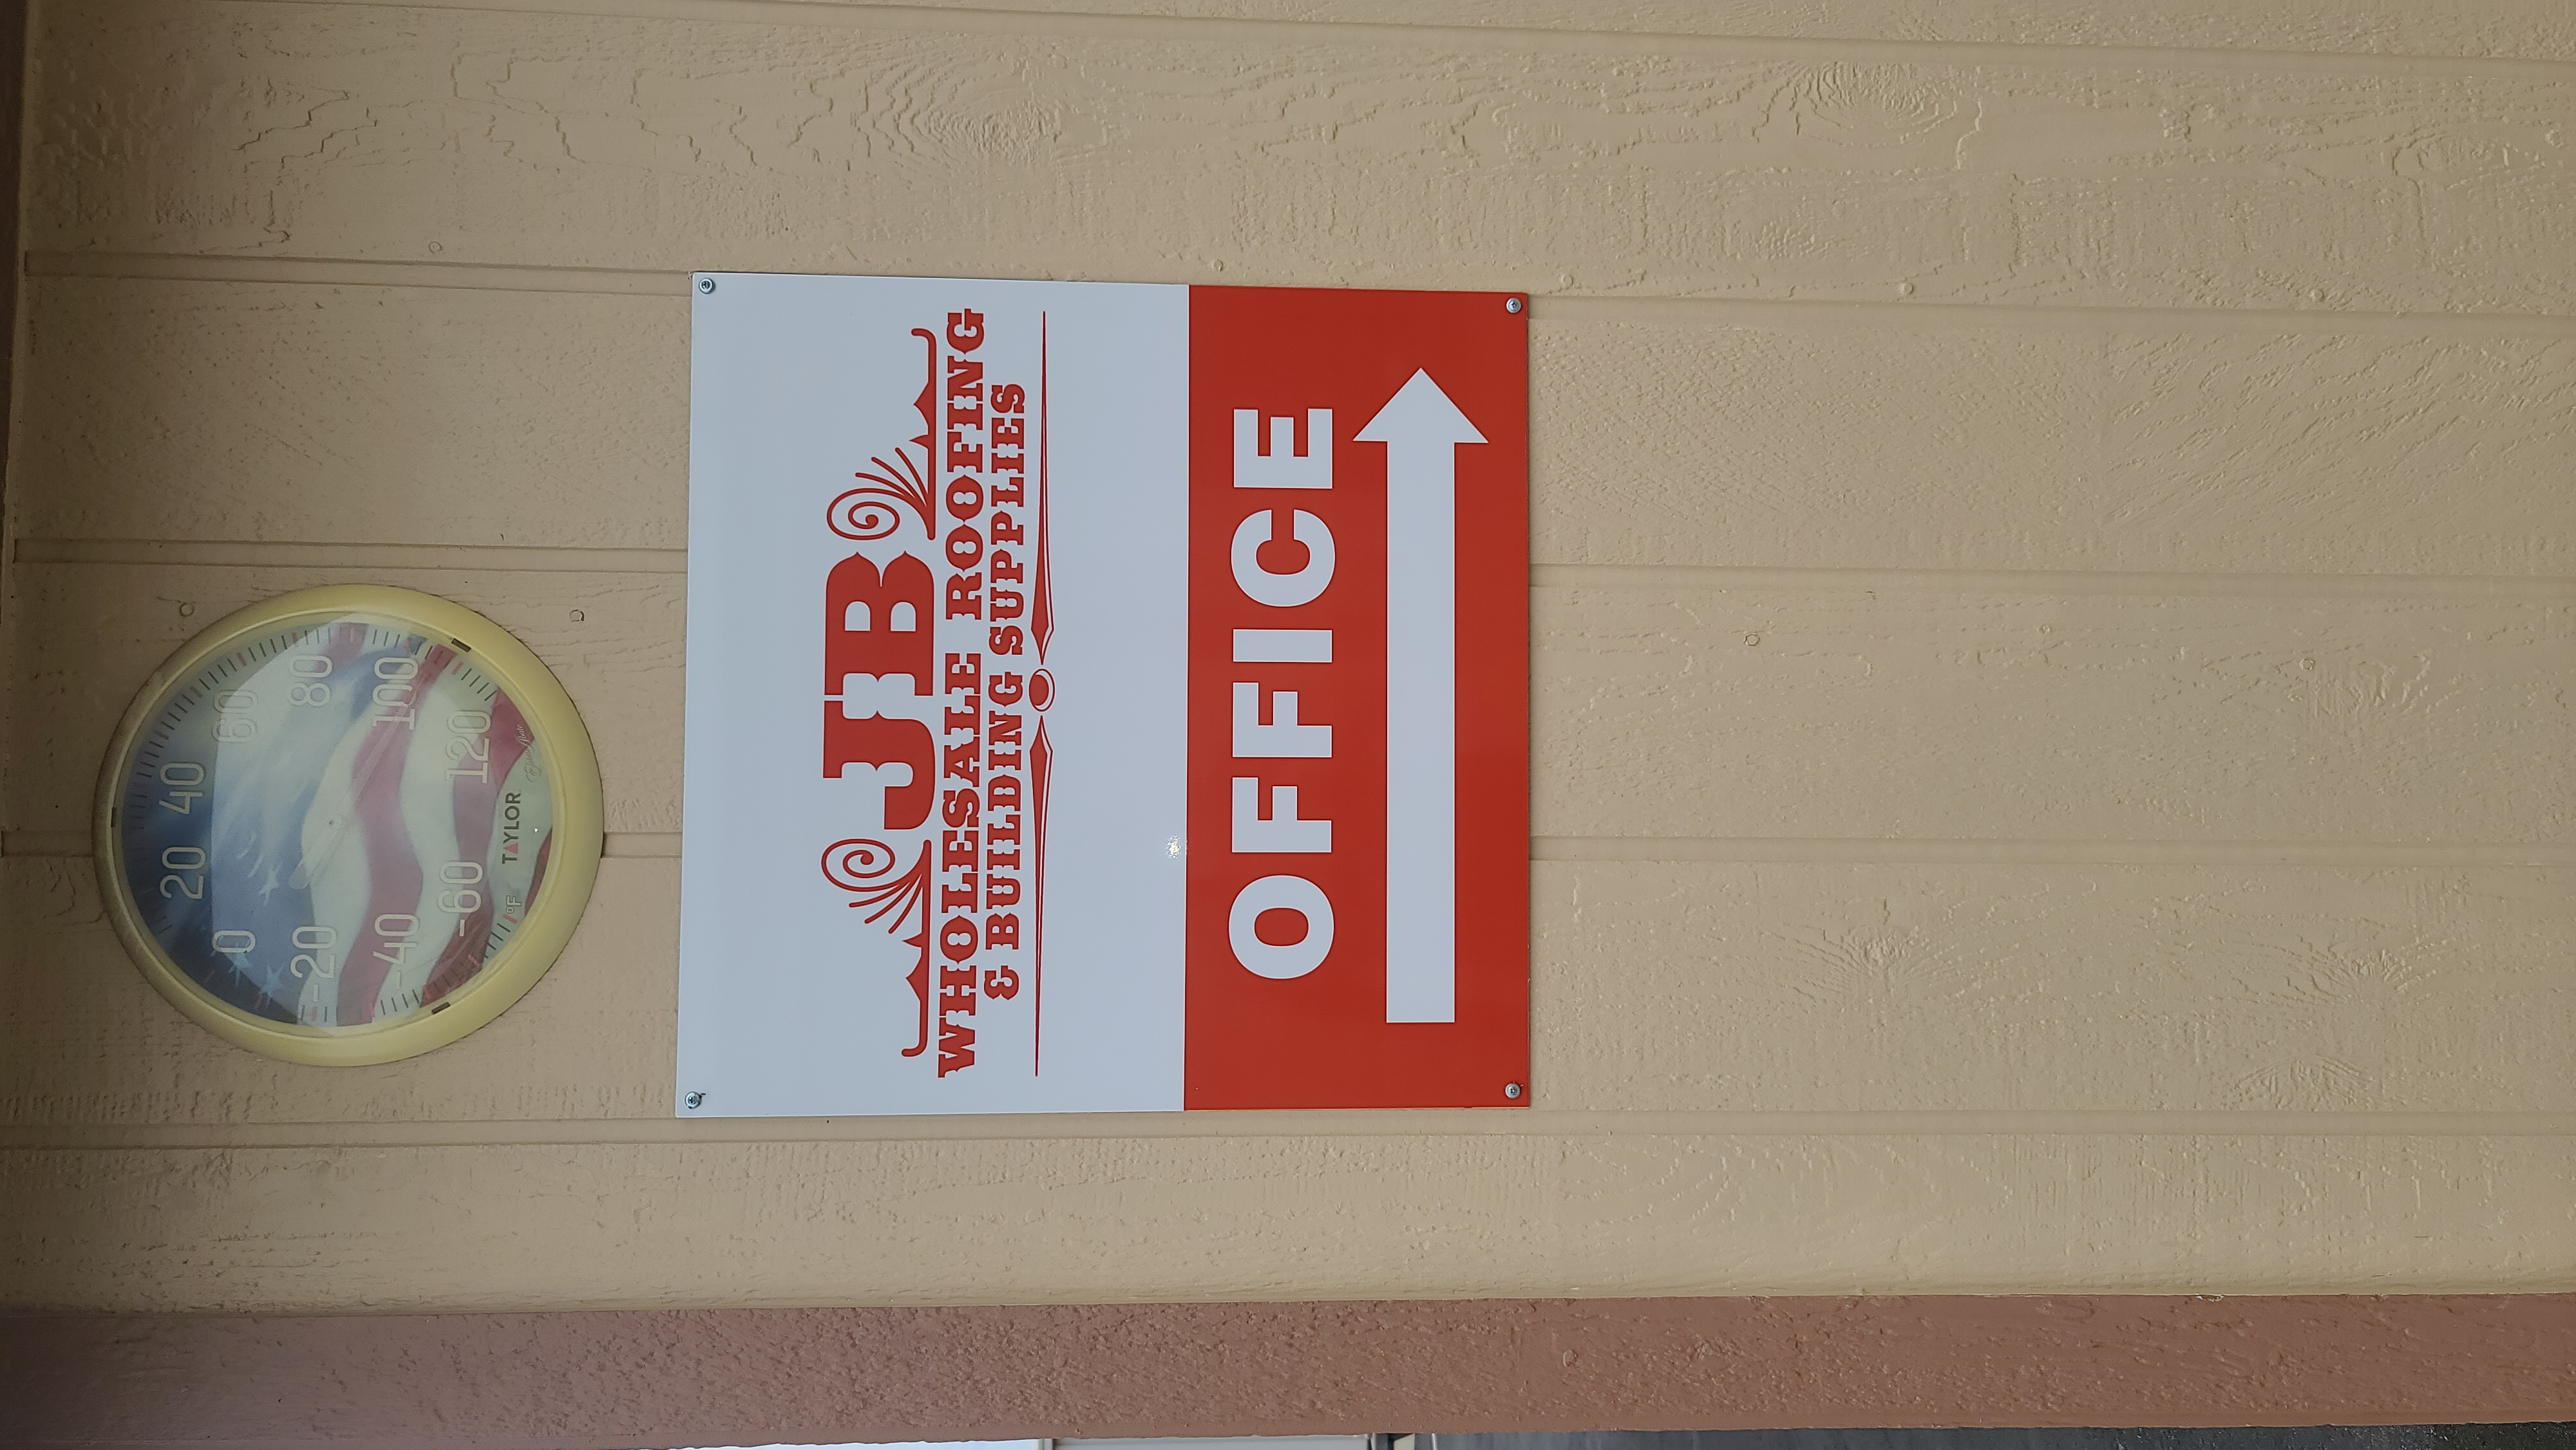 This outdoor directional sign for JB Wholesale Roofing's Murrieta location shows the way to their office, which is helpful for staff and visitors alike.